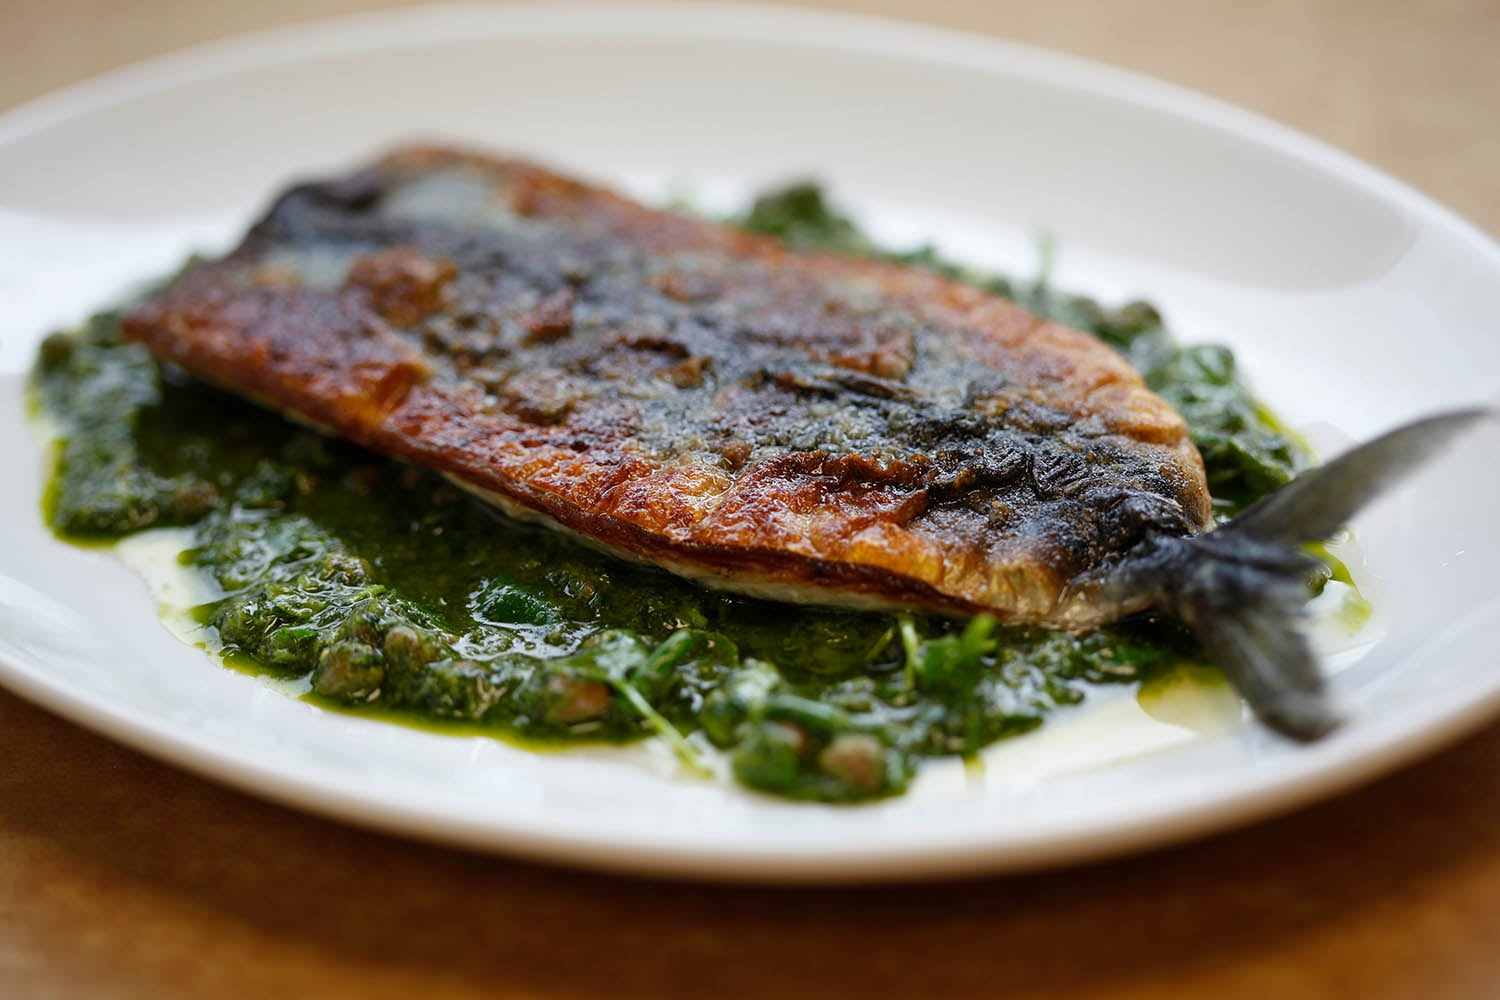 Pan-fried fish with salsa verde